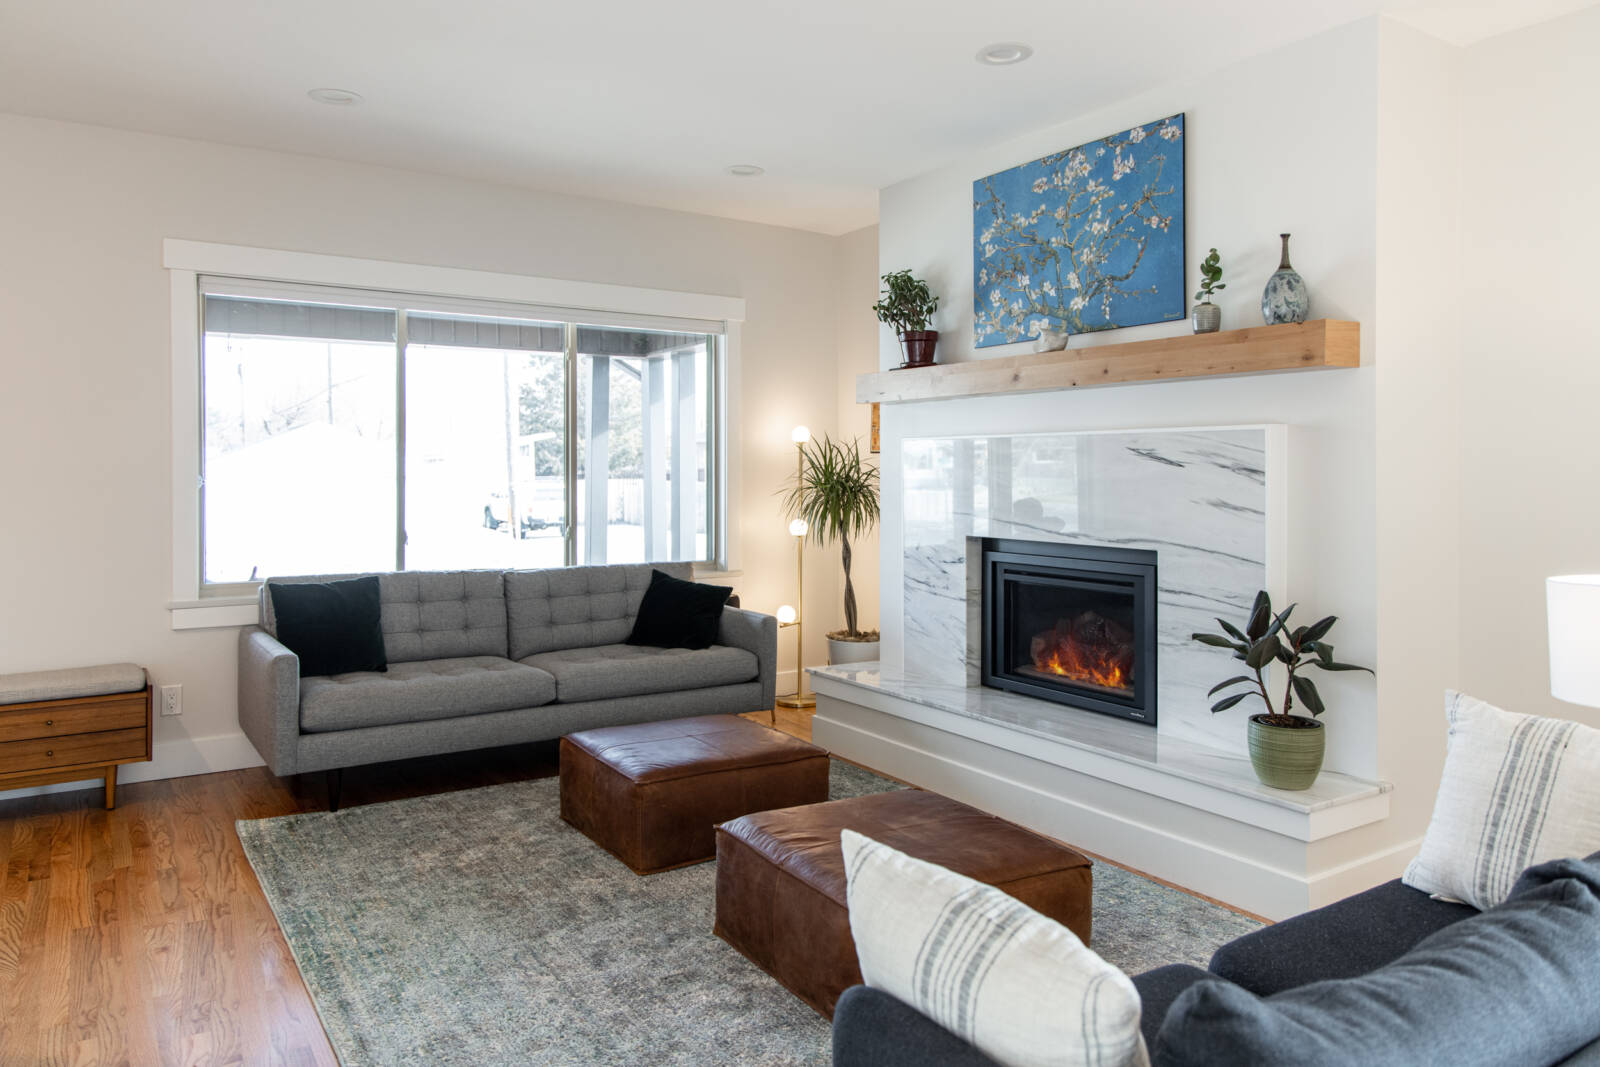 Marble slap fireplace, contemporary furniture, Fireplace ideas, natural light, floating shelves